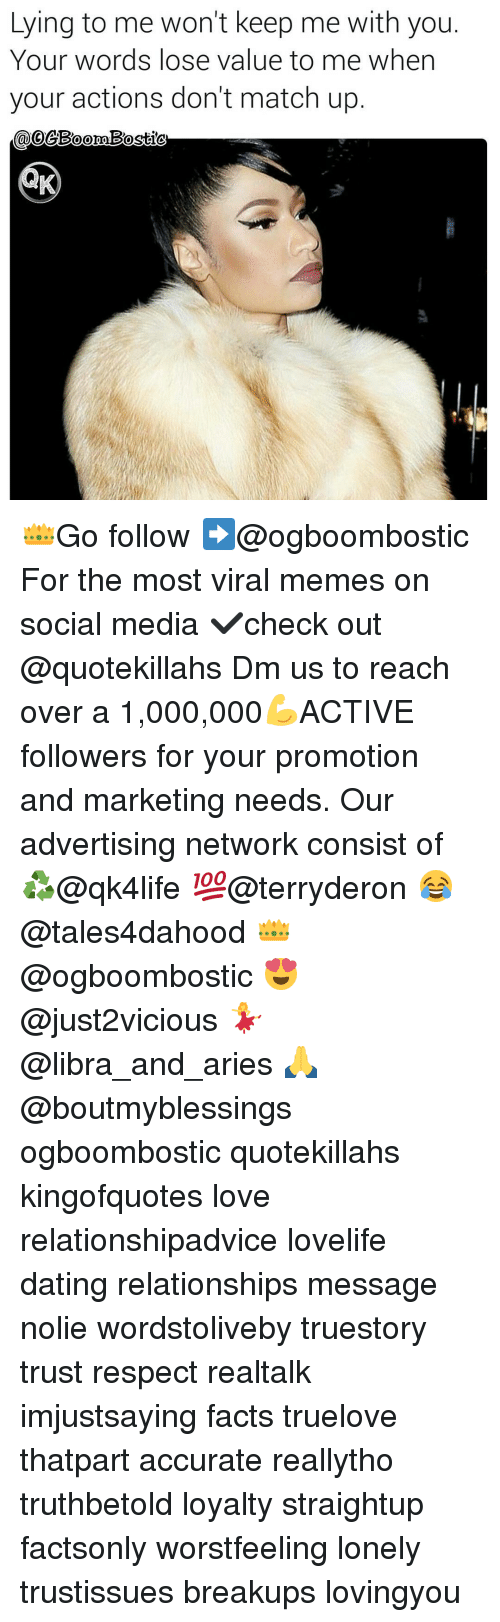 Memes, Relationships, and Social Media: Lying to me won't keep me with you  Your words lose value to me when  your actions don't match up  oo 👑Go follow ➡@ogboombostic For the most viral memes on social media ✔check out @quotekillahs Dm us to reach over a 1,000,000💪ACTIVE followers for your promotion and marketing needs. Our advertising network consist of ♻@qk4life 💯@terryderon 😂@tales4dahood 👑@ogboombostic 😍@just2vicious 💃@libra_and_aries 🙏@boutmyblessings ogboombostic quotekillahs kingofquotes love relationshipadvice lovelife dating relationships message nolie wordstoliveby truestory trust respect realtalk imjustsaying facts truelove thatpart accurate reallytho truthbetold loyalty straightup factsonly worstfeeling lonely trustissues breakups lovingyou